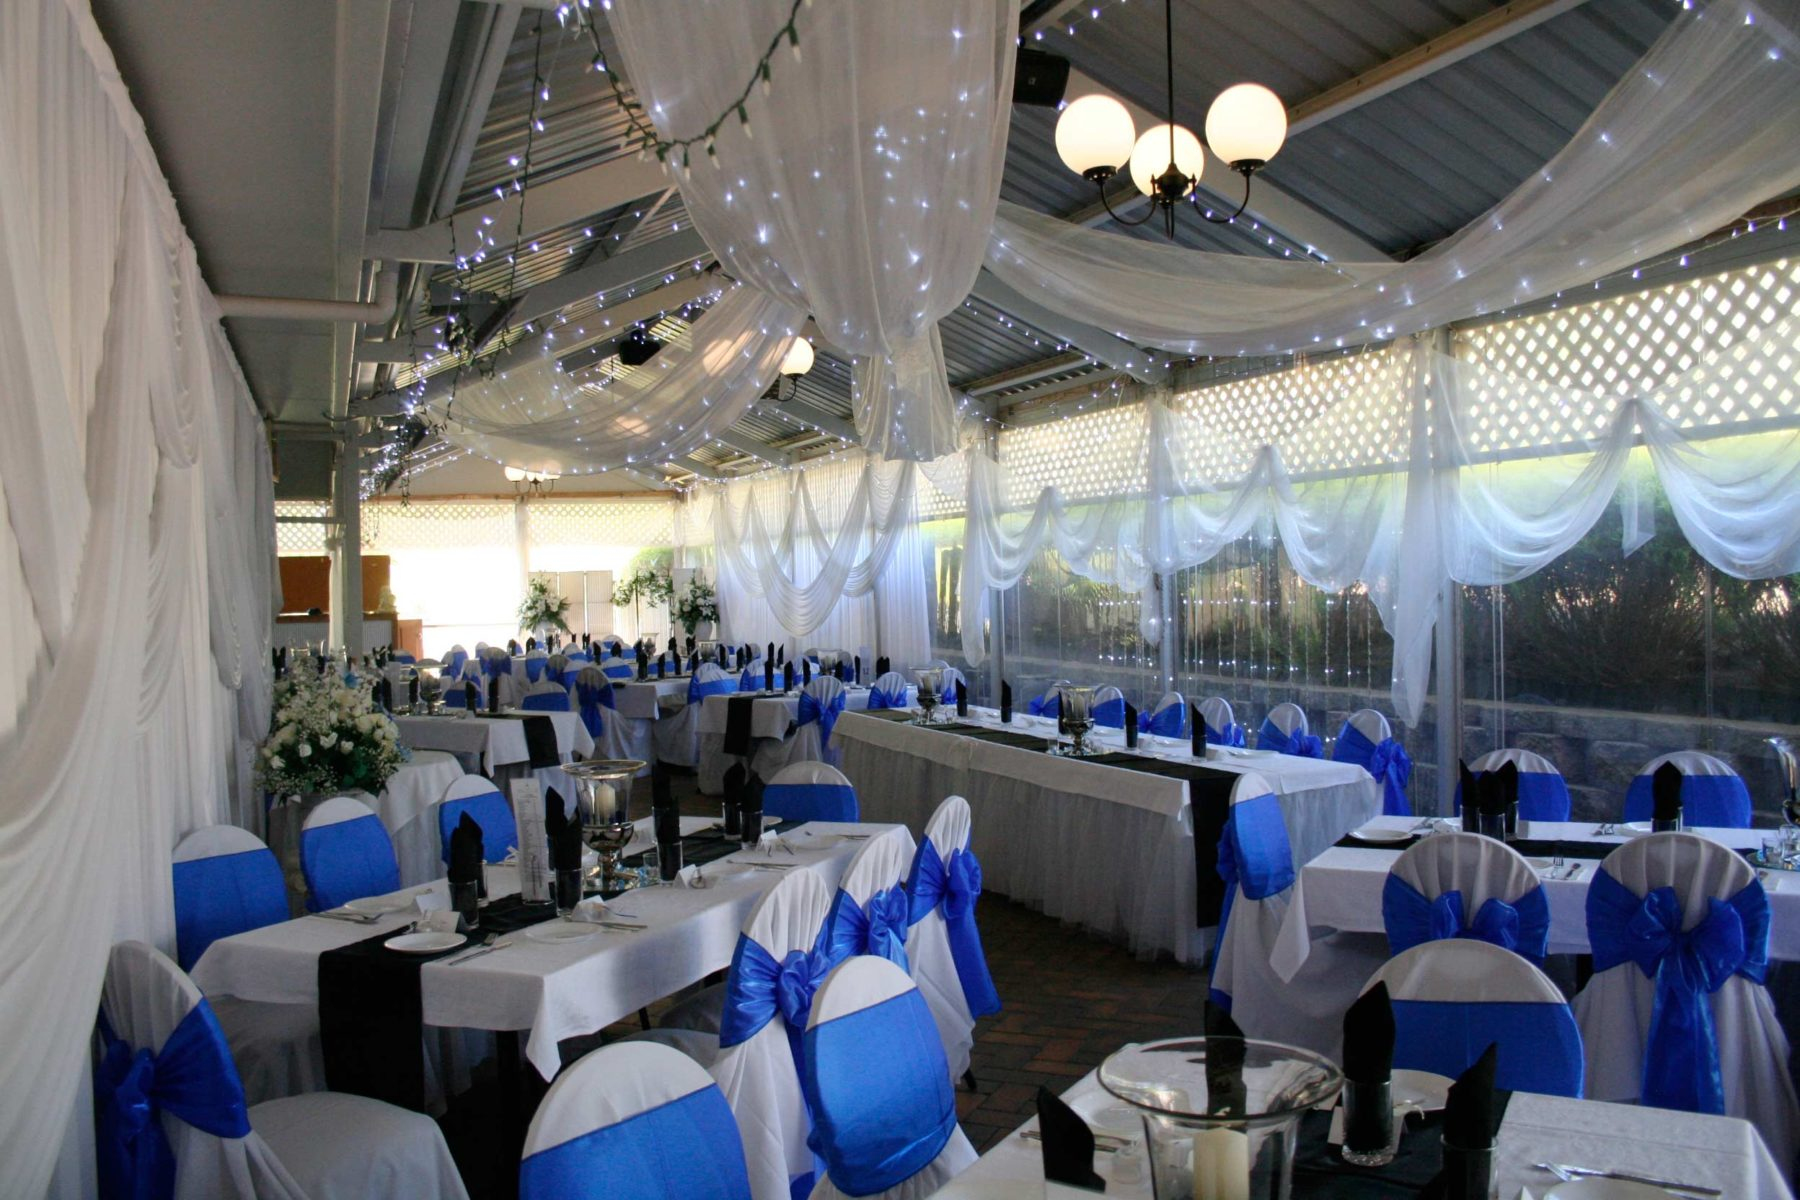 chairs wedding decoration white leather with chrome legs weddings venue - reception and ceremony garden adelaide